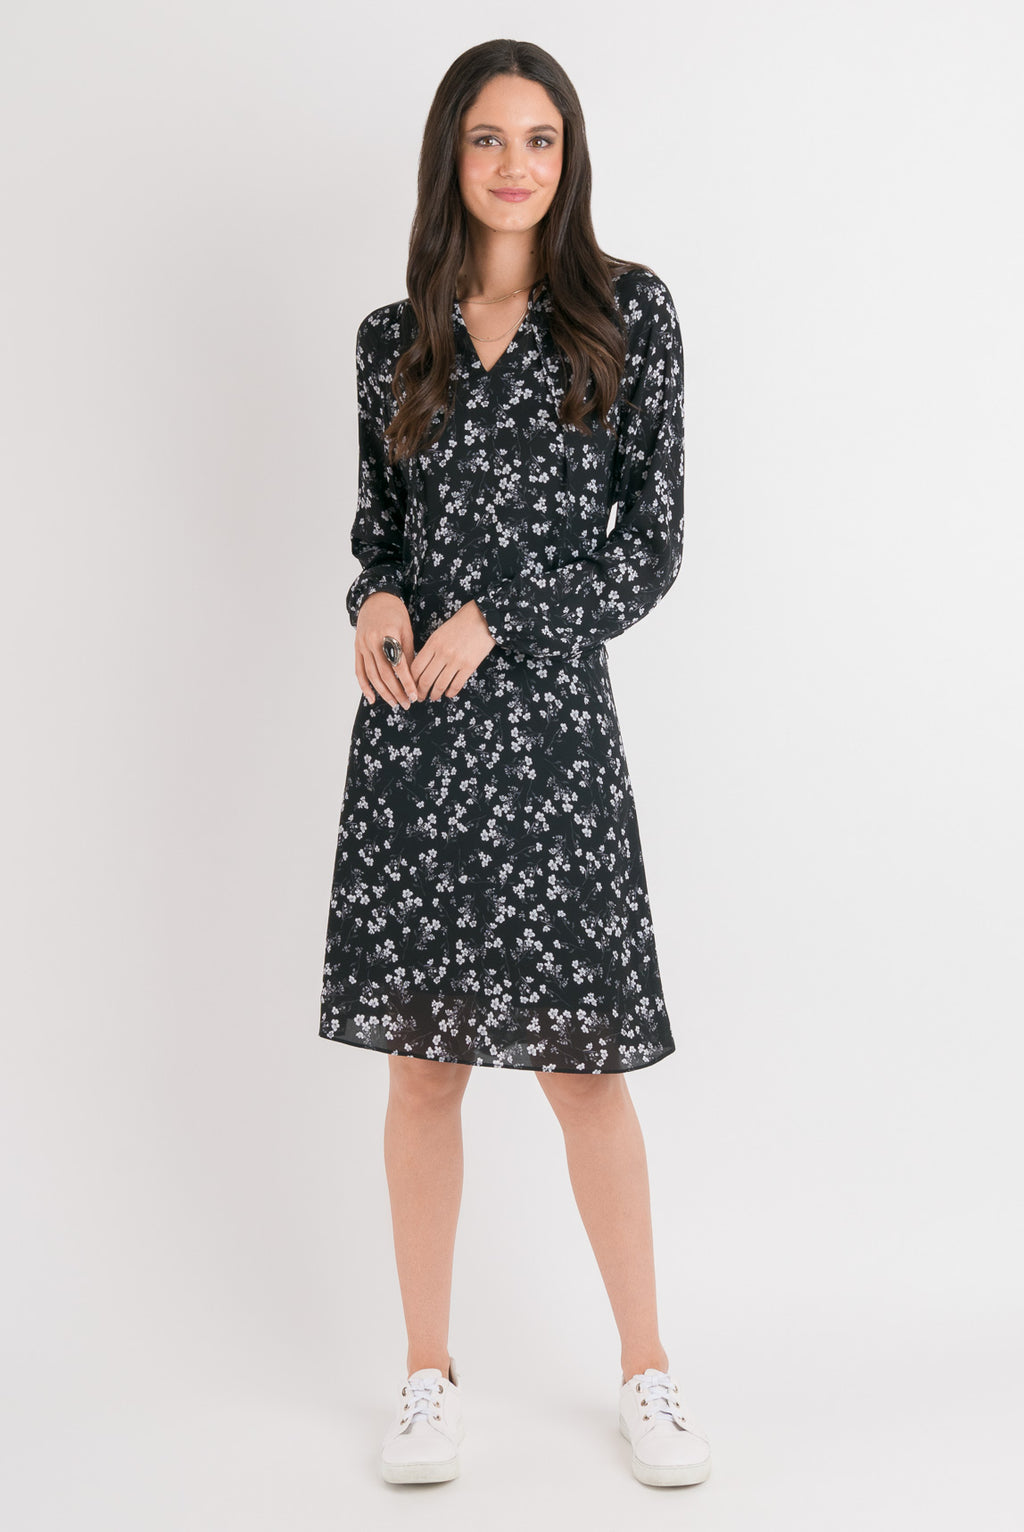 Raglan Dress - Black Floral